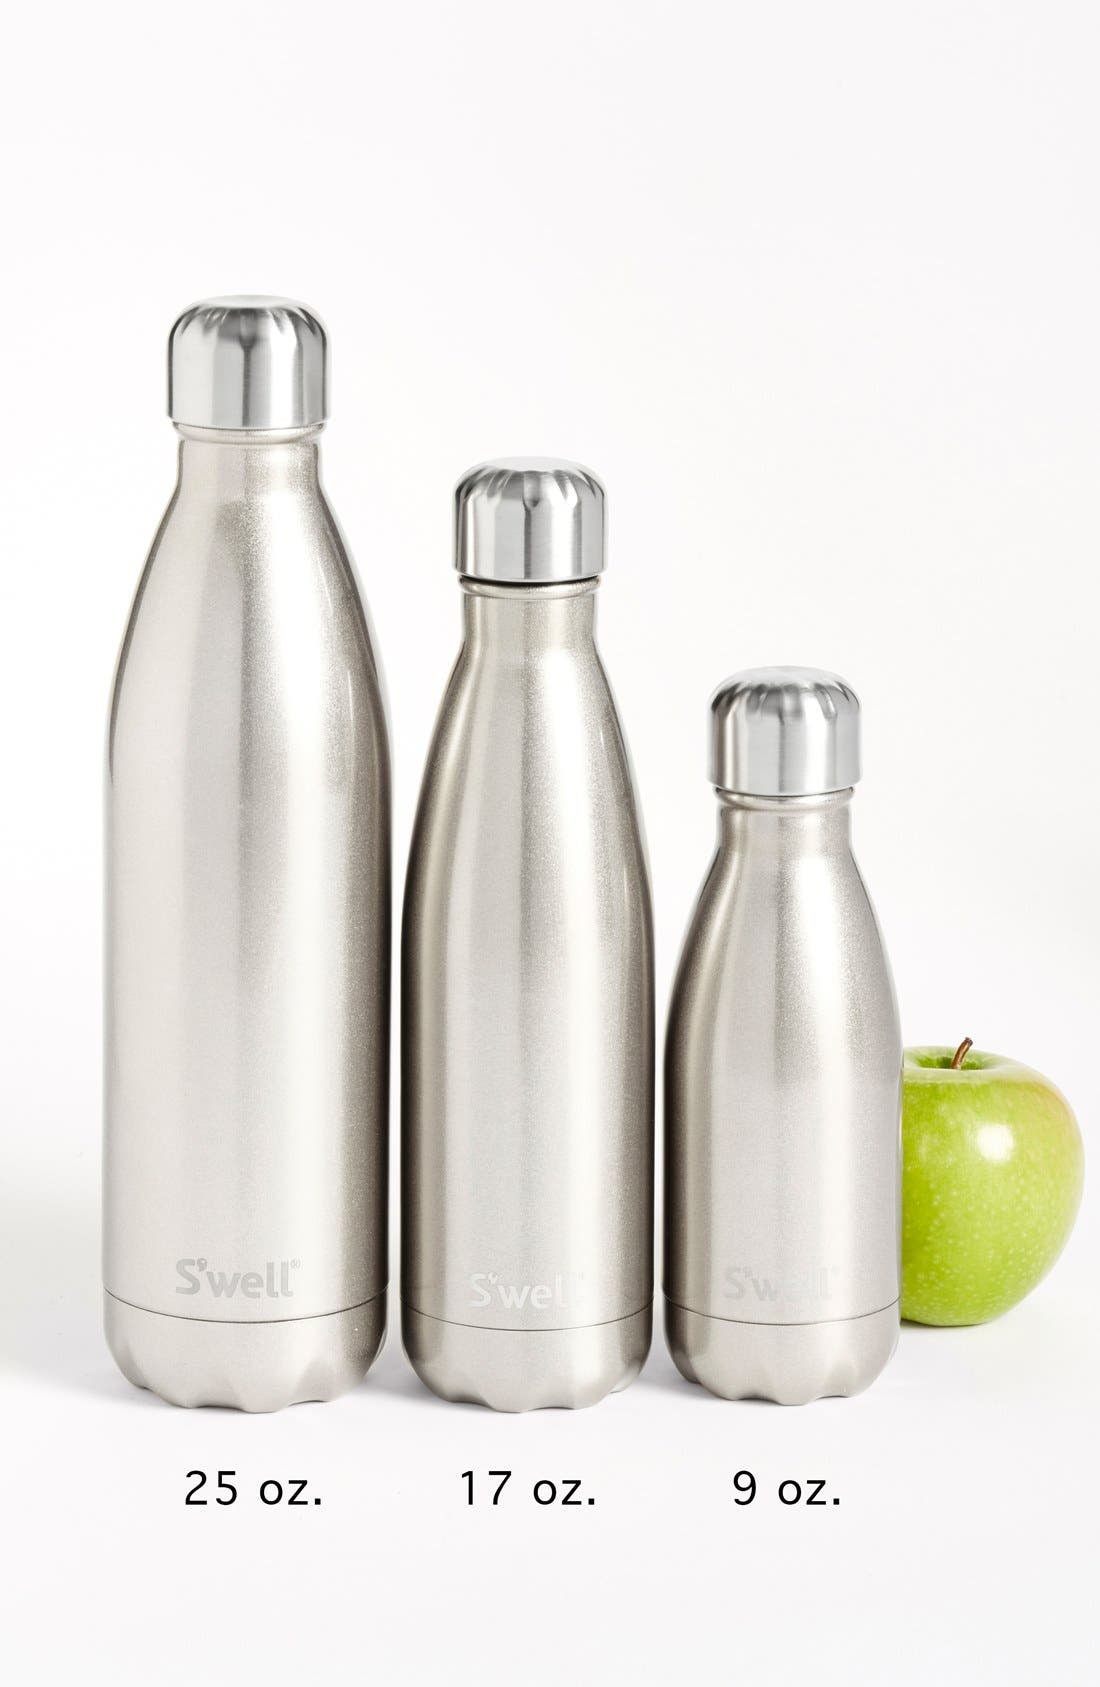 'London Chimney' Insulated Stainless Steel Water Bottle,                             Alternate thumbnail 7, color,                             001